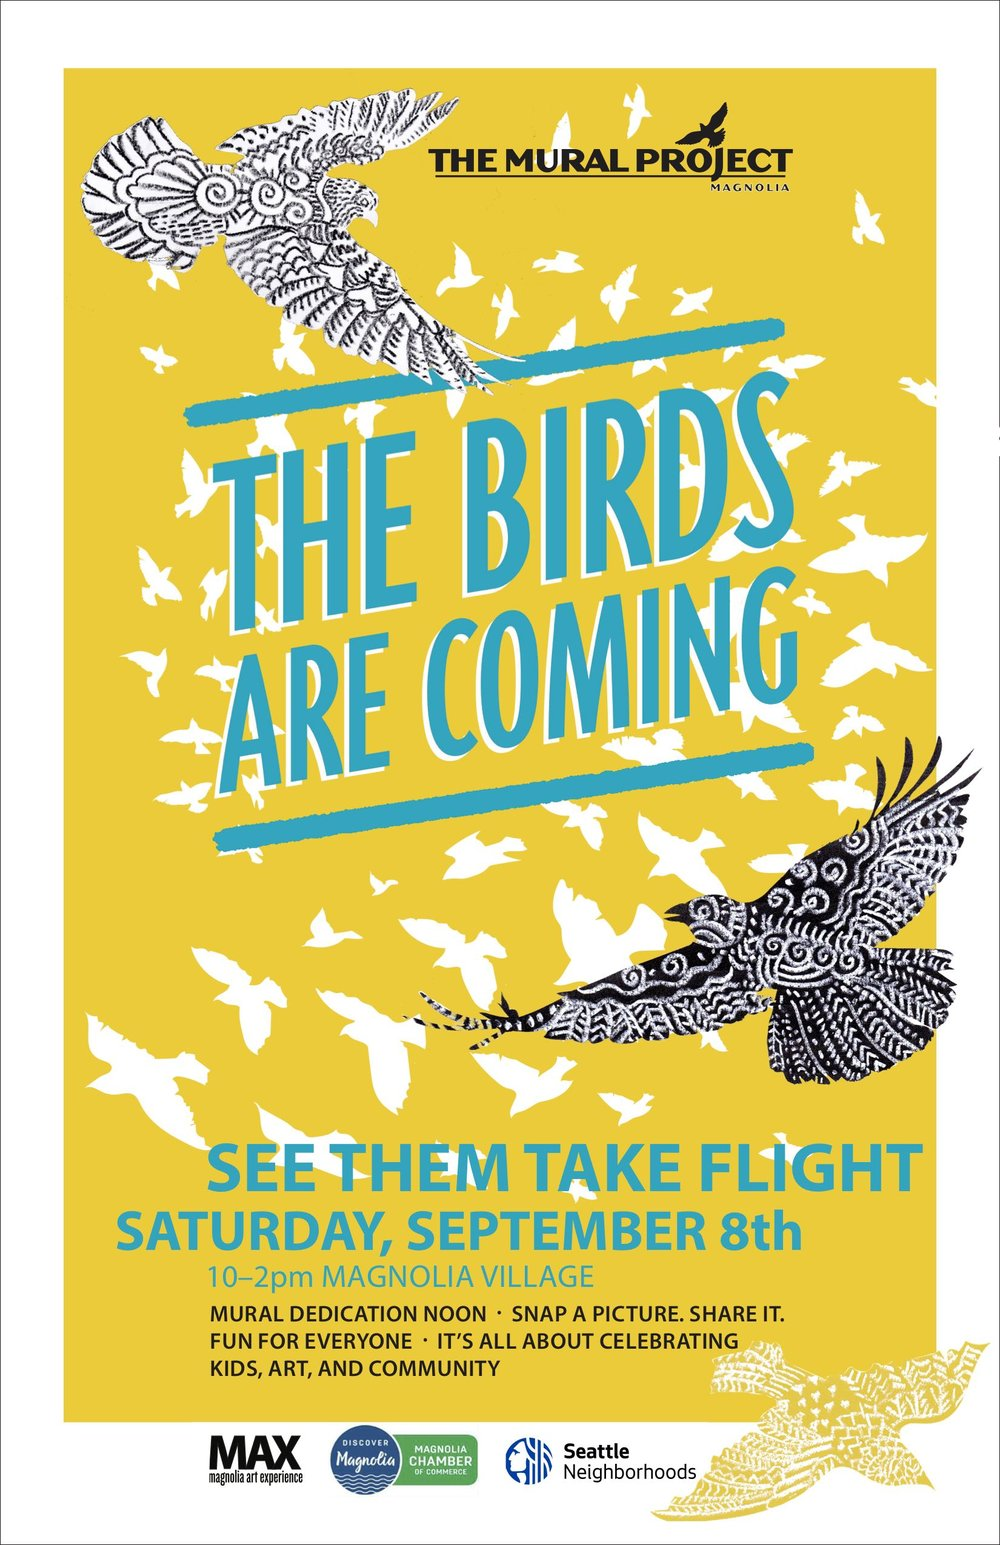 TheBirdsAreComing_Poster_Final.jpg